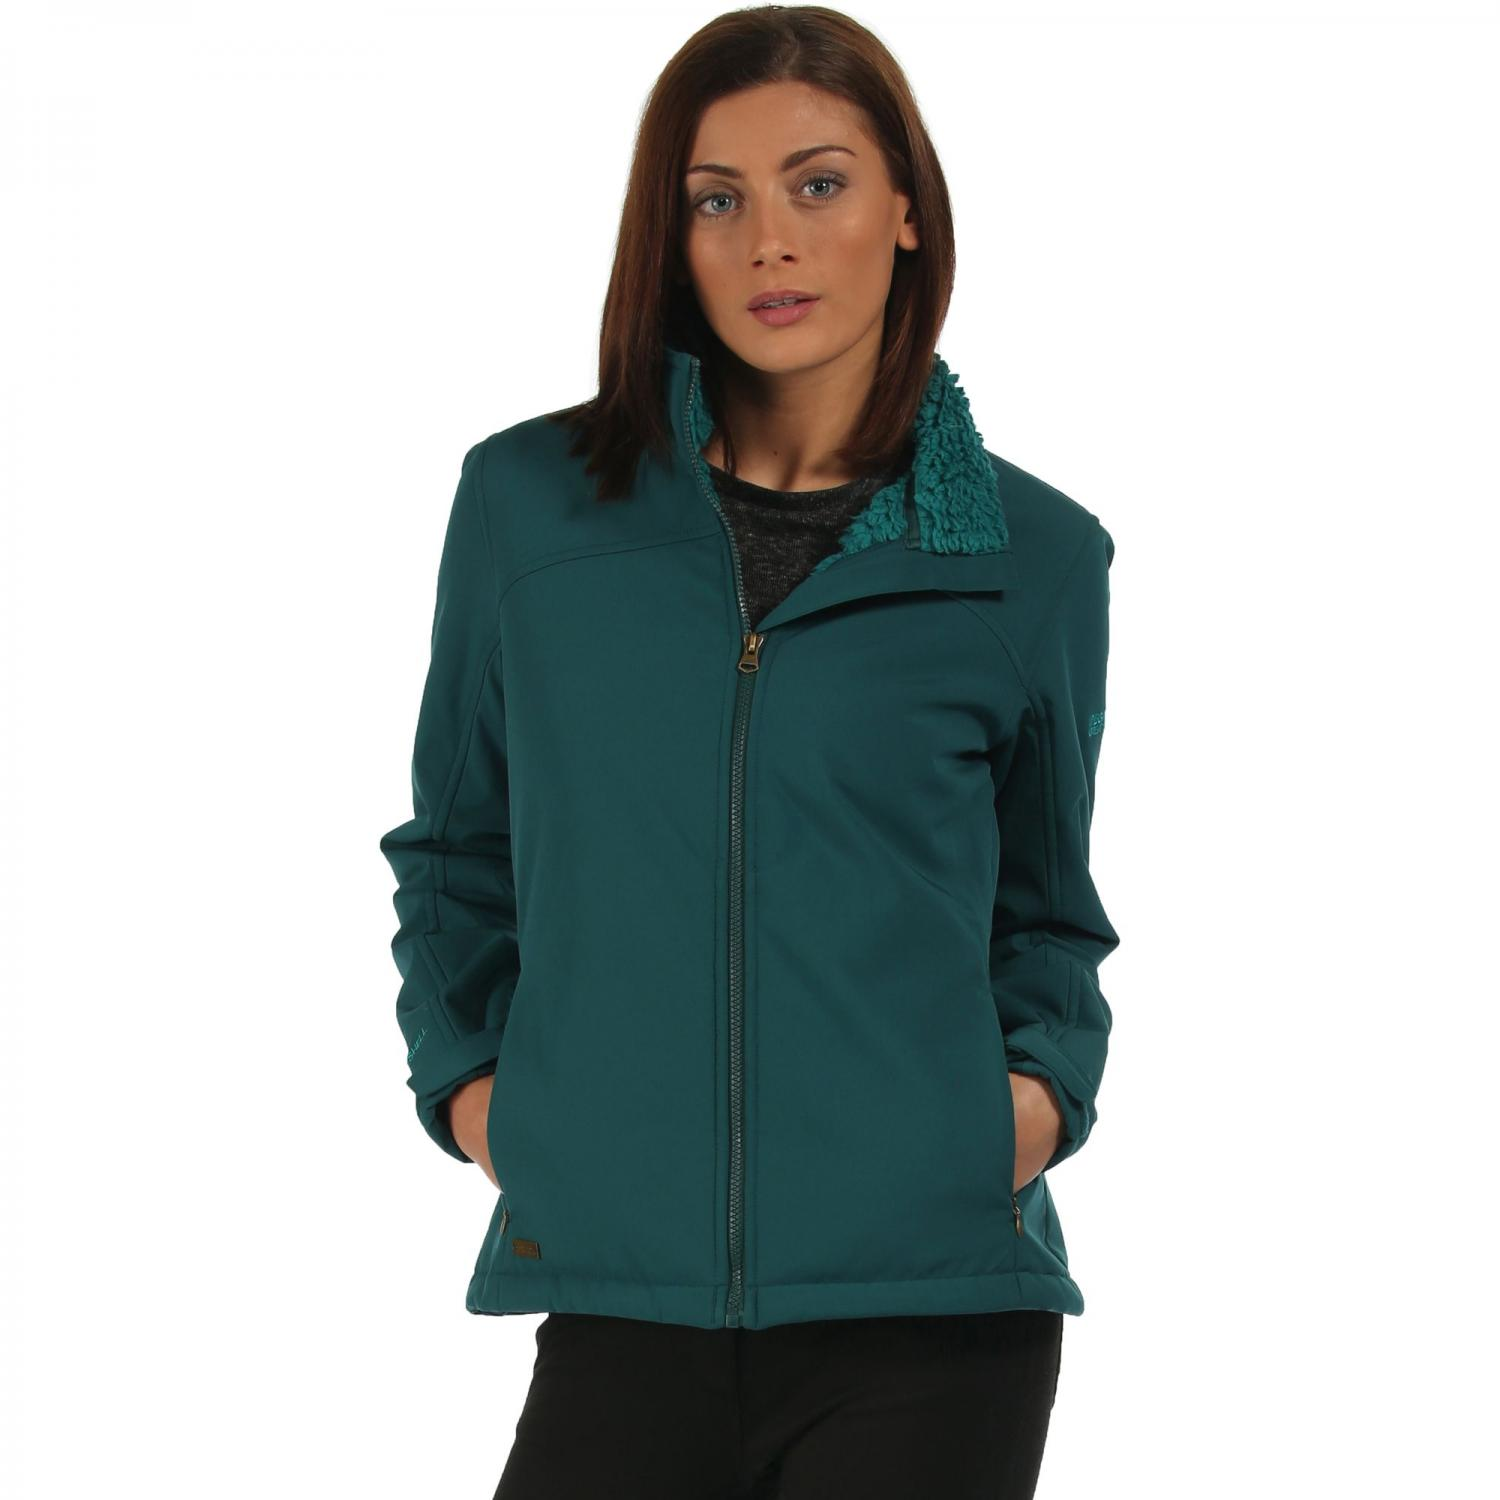 Tulsie Softshell Jacket Deep Teal